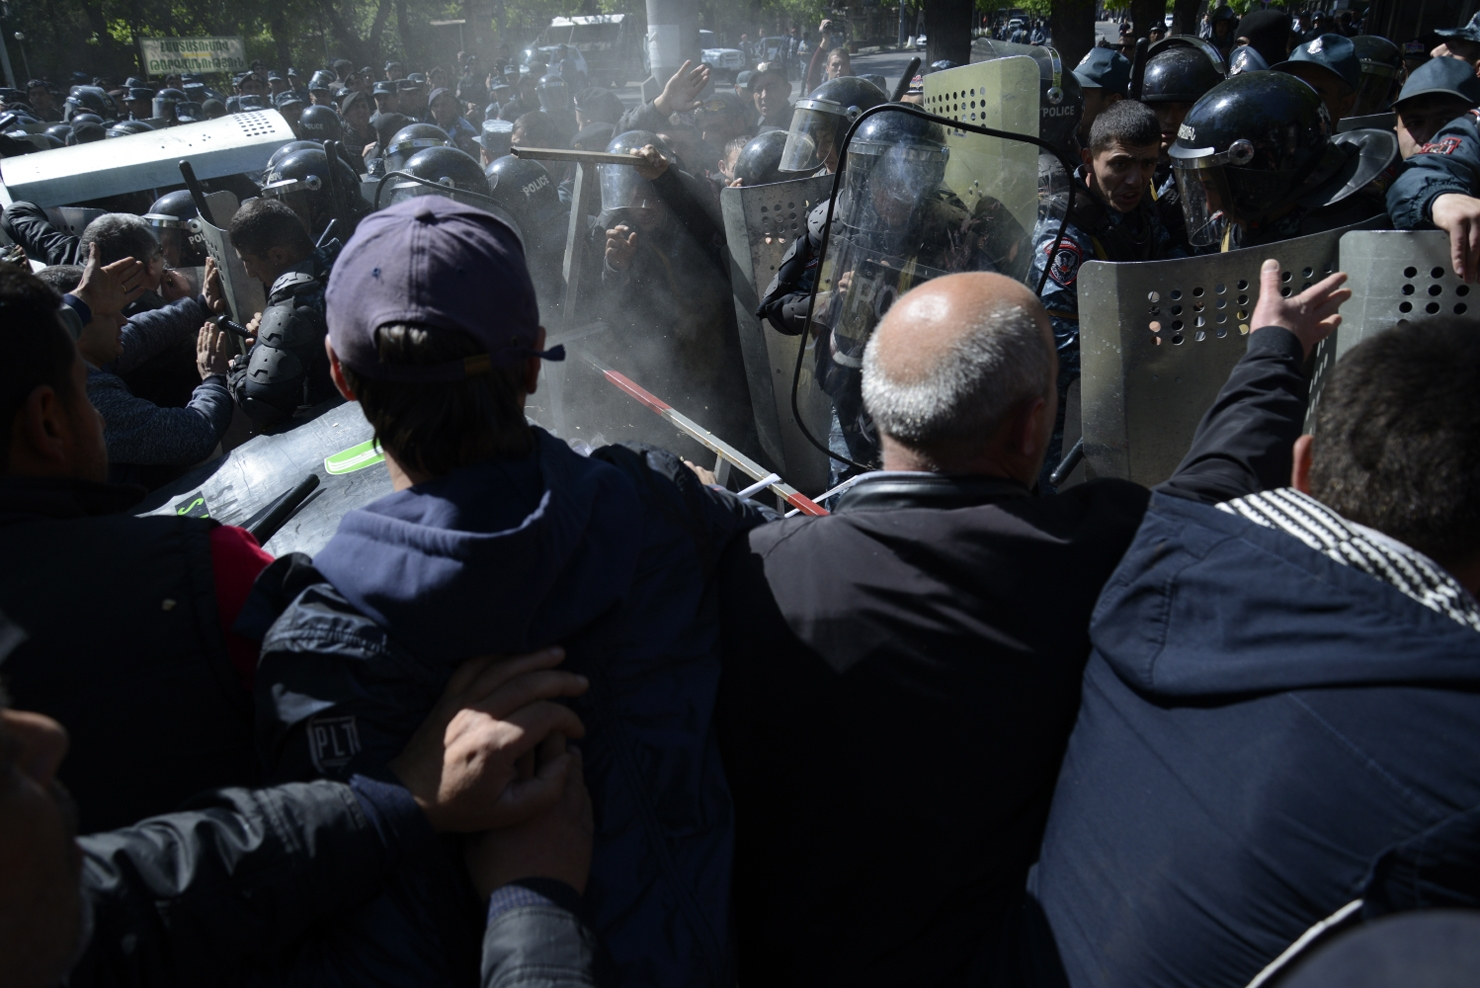 Clashes between police and protestors on Baghramyan Street